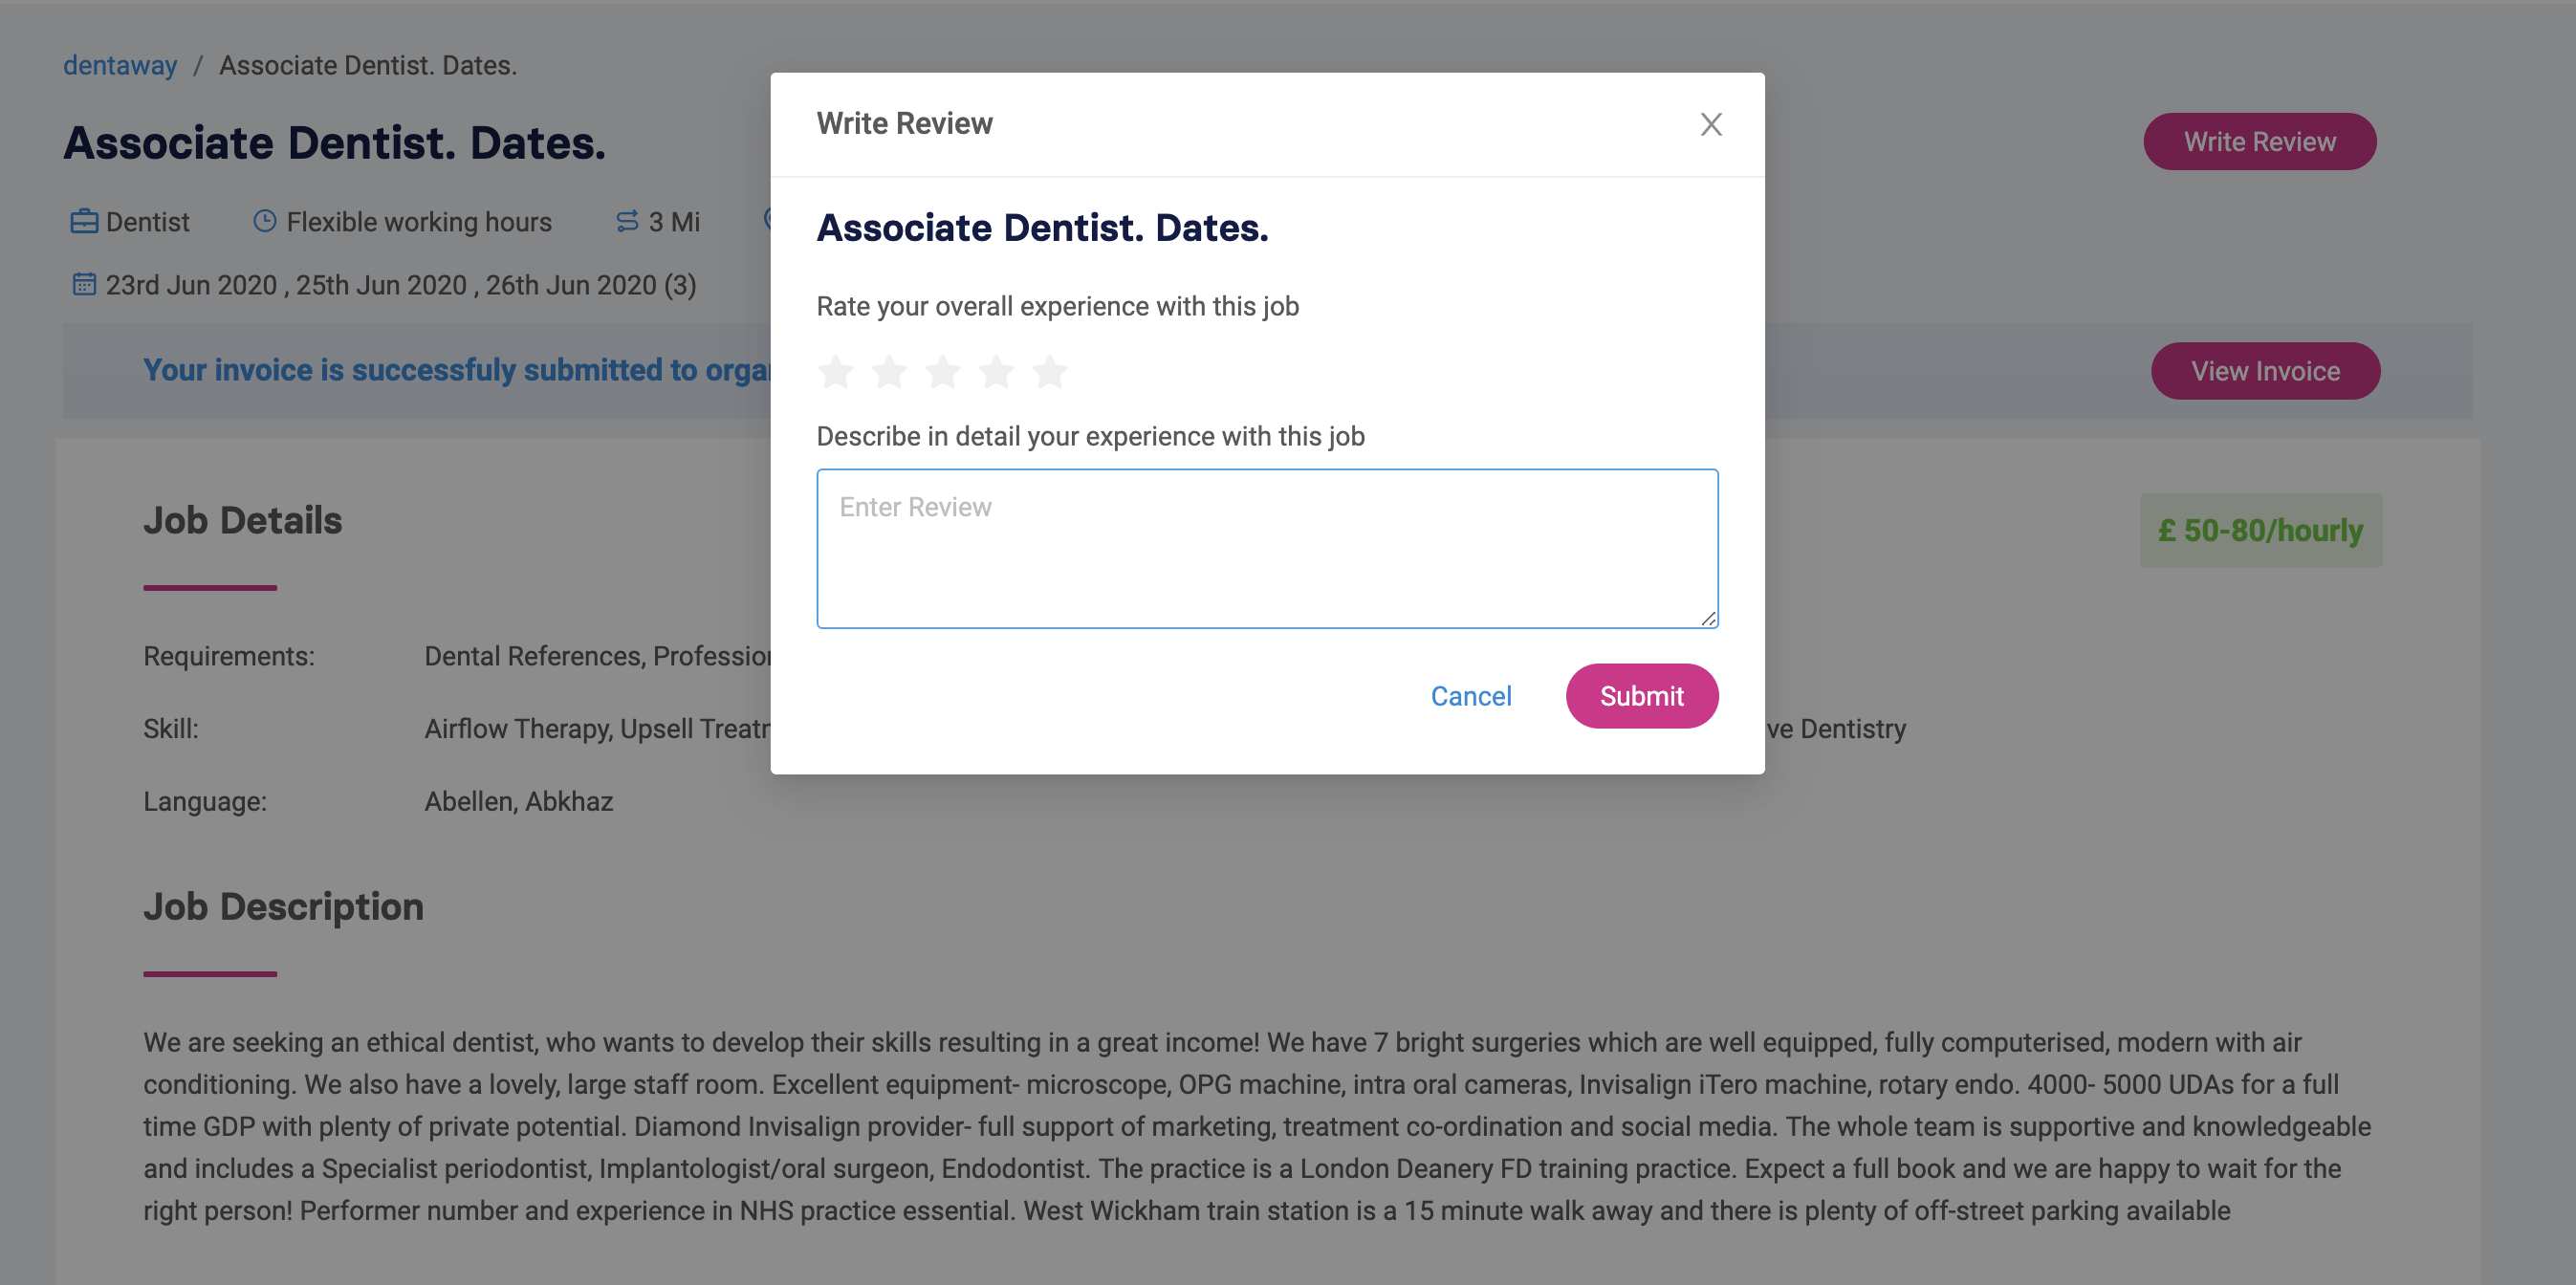 Write a review for your dental job